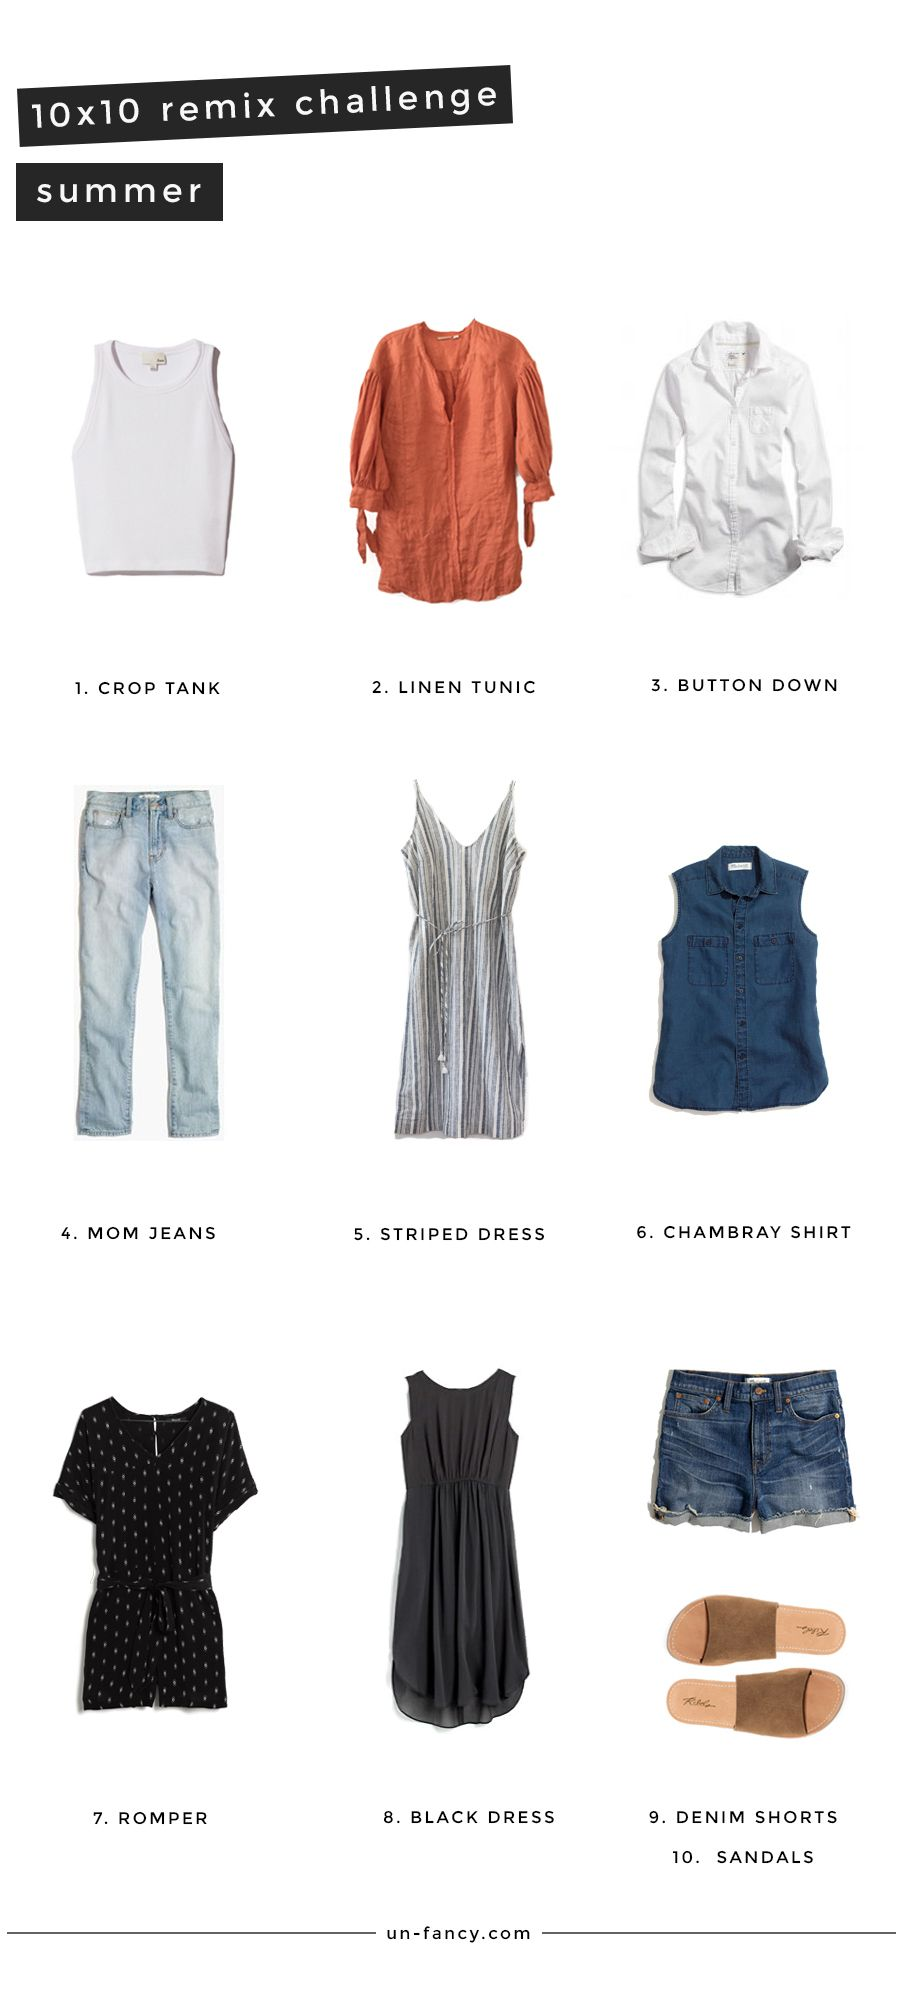 Summer Remix 10 Pieces 10 Outfits 10 Days Summer Capsule Wardrobe Spring Capsule Wardrobe Capsule Wardrobe